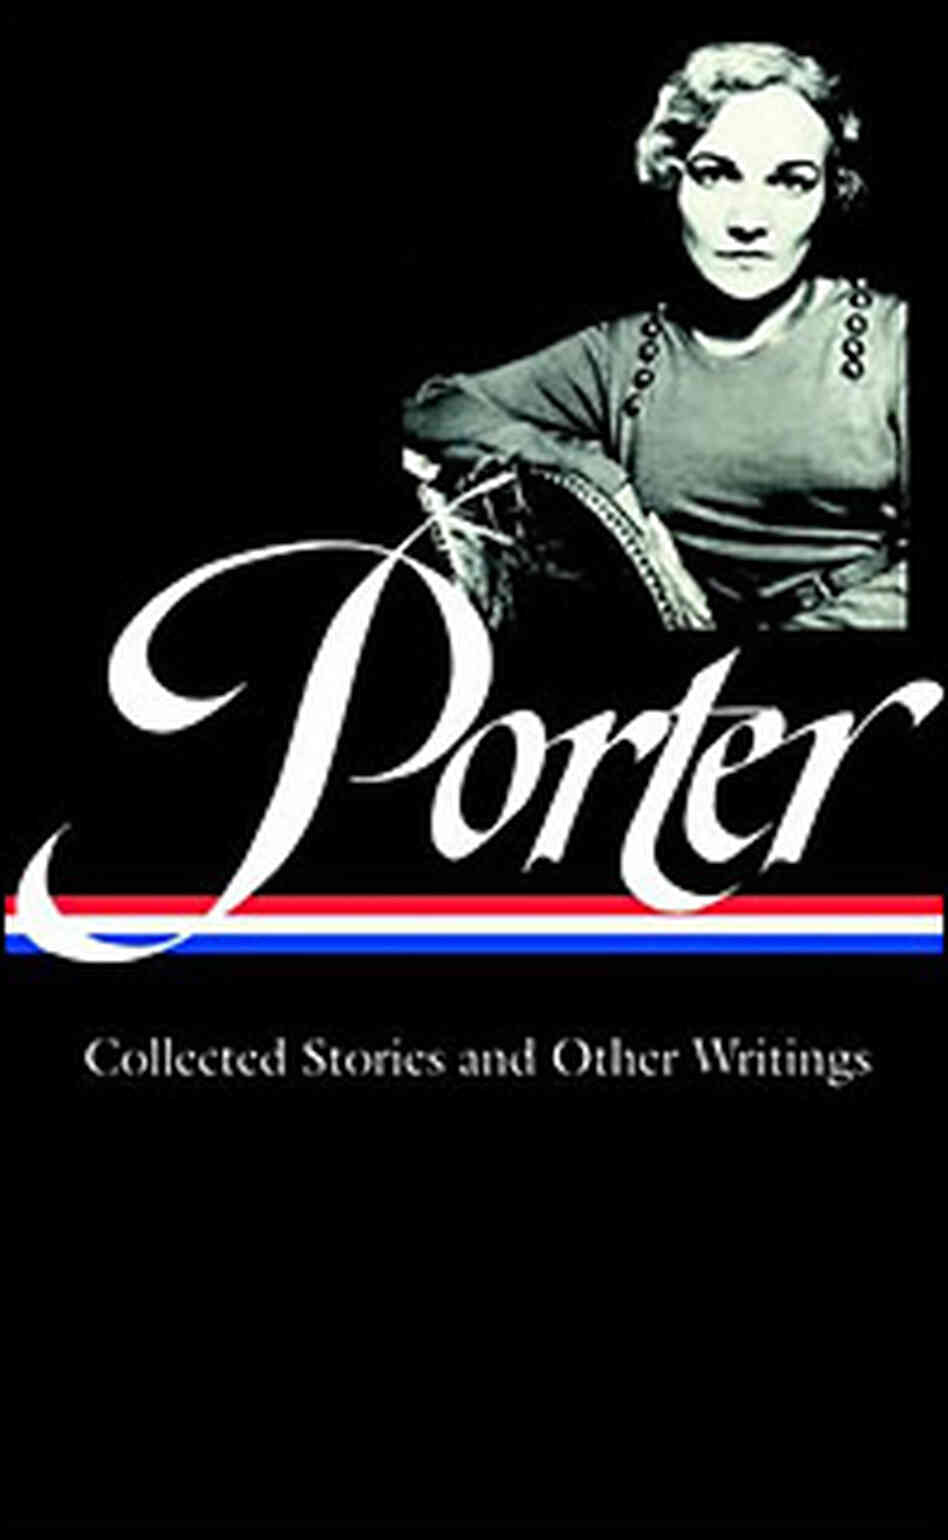 'Katherine Anne Porter: Collected Stories and Other Writings'